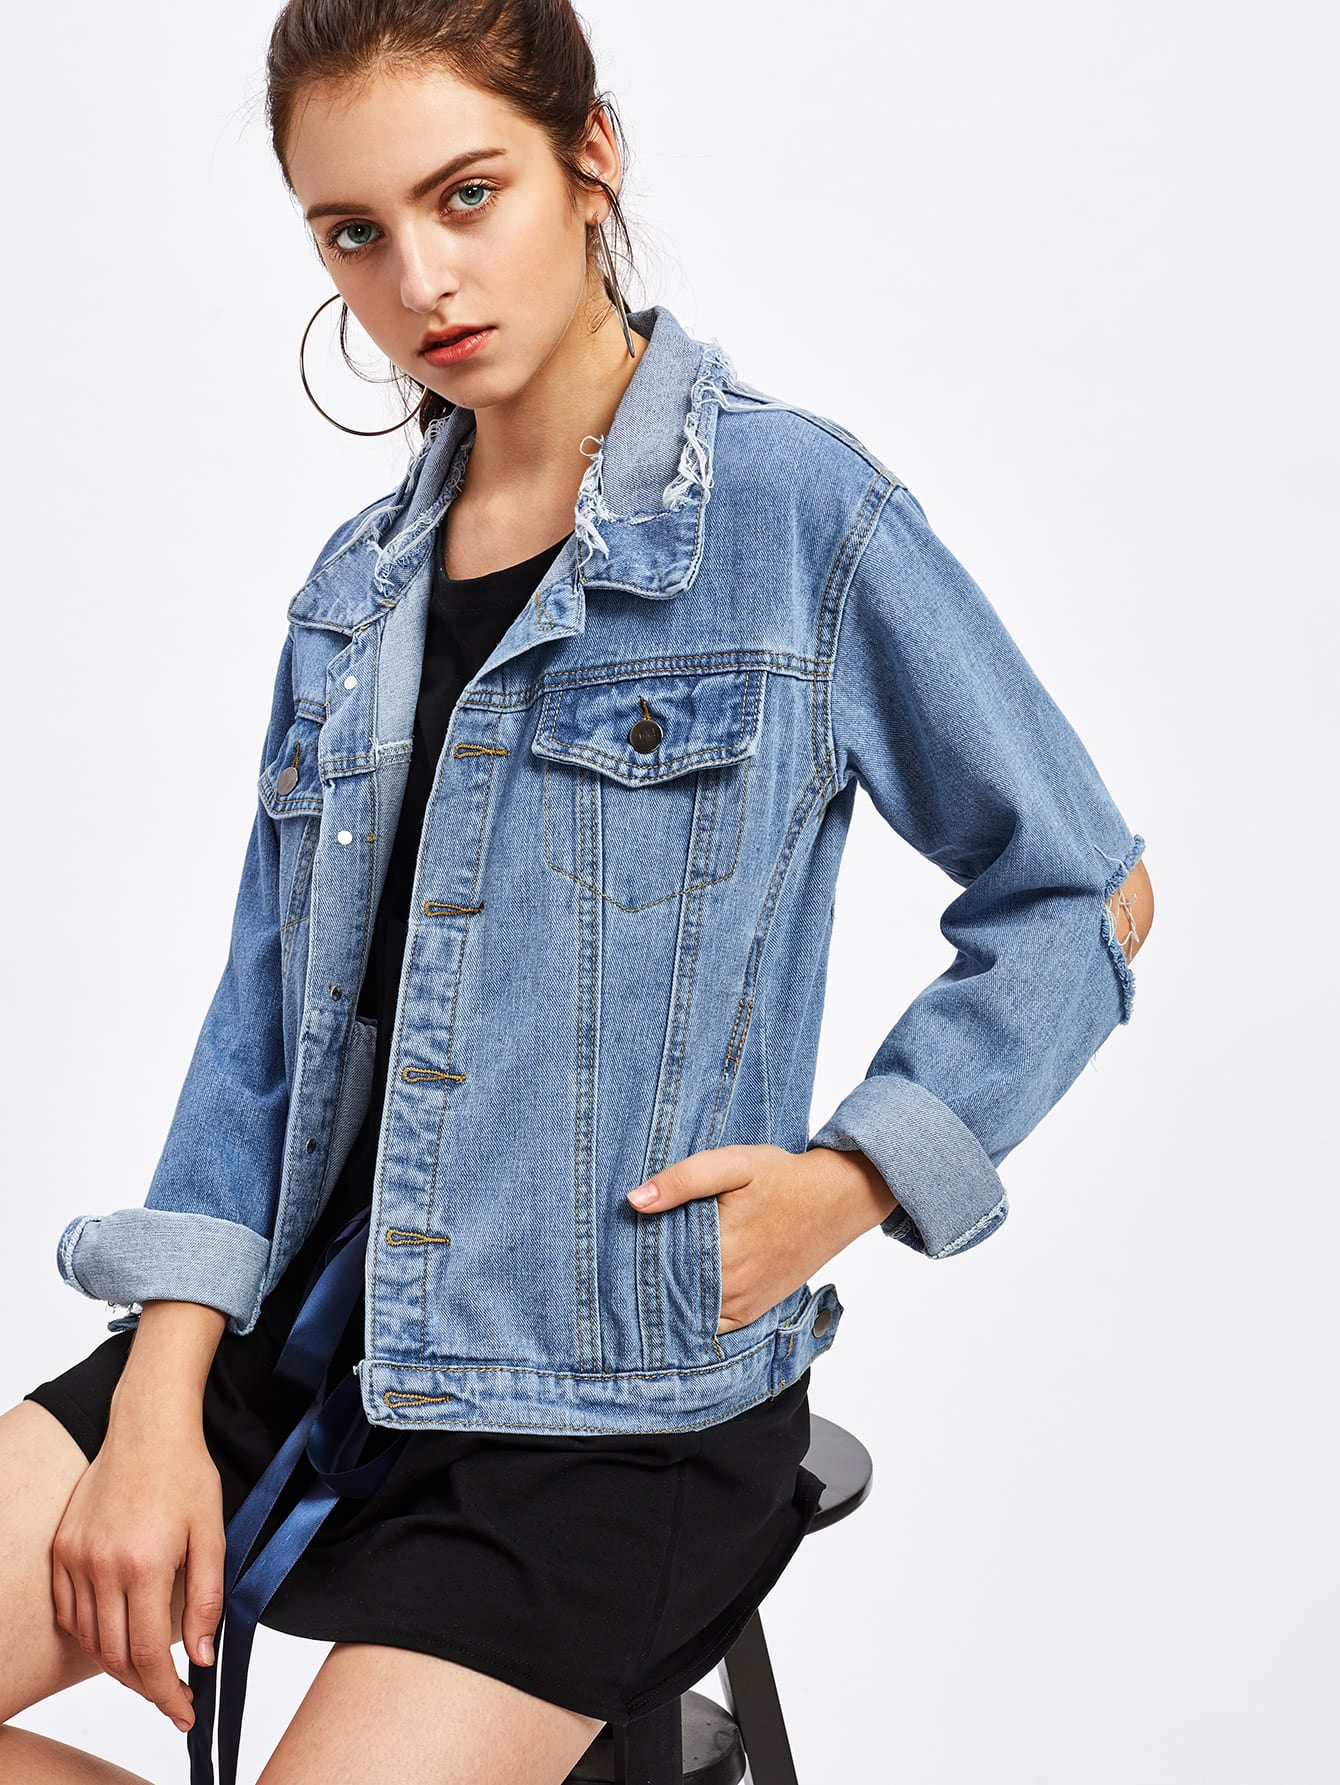 Ripped Cut Out Elbow Detail Denim Jacket ripped stitch detail denim jacket